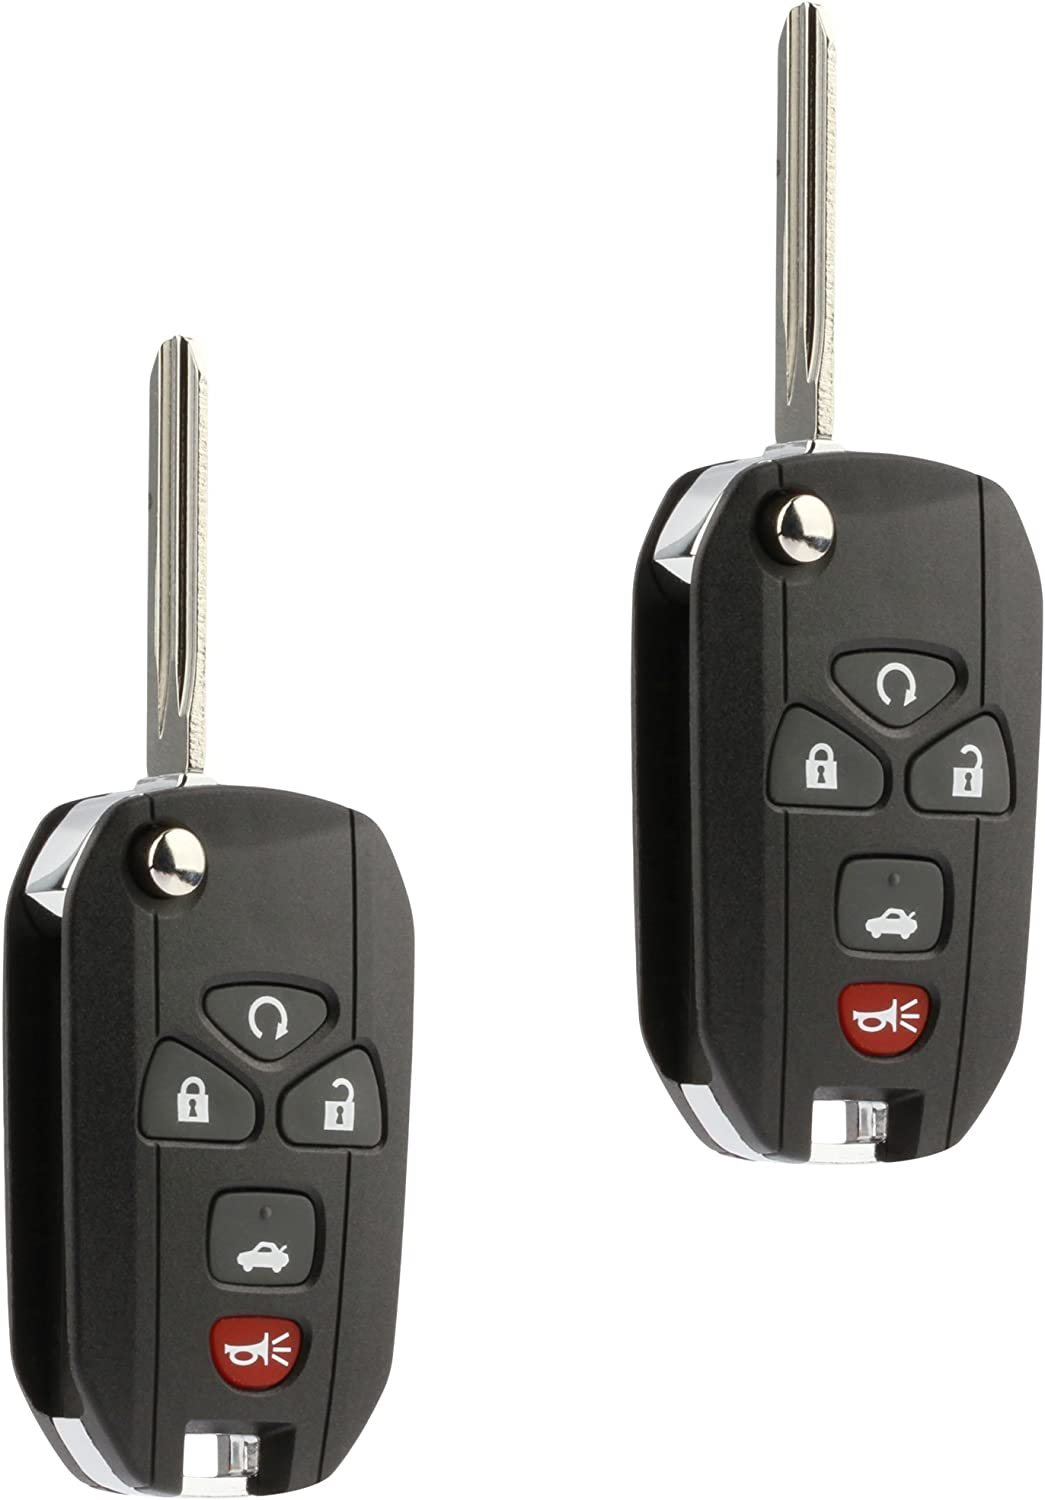 Pontiac Saturn Set of 2 22733524, KOBGT04A, 3521A-T04A Car Flip Key Fob Keyless Entry Remote fits Chevy